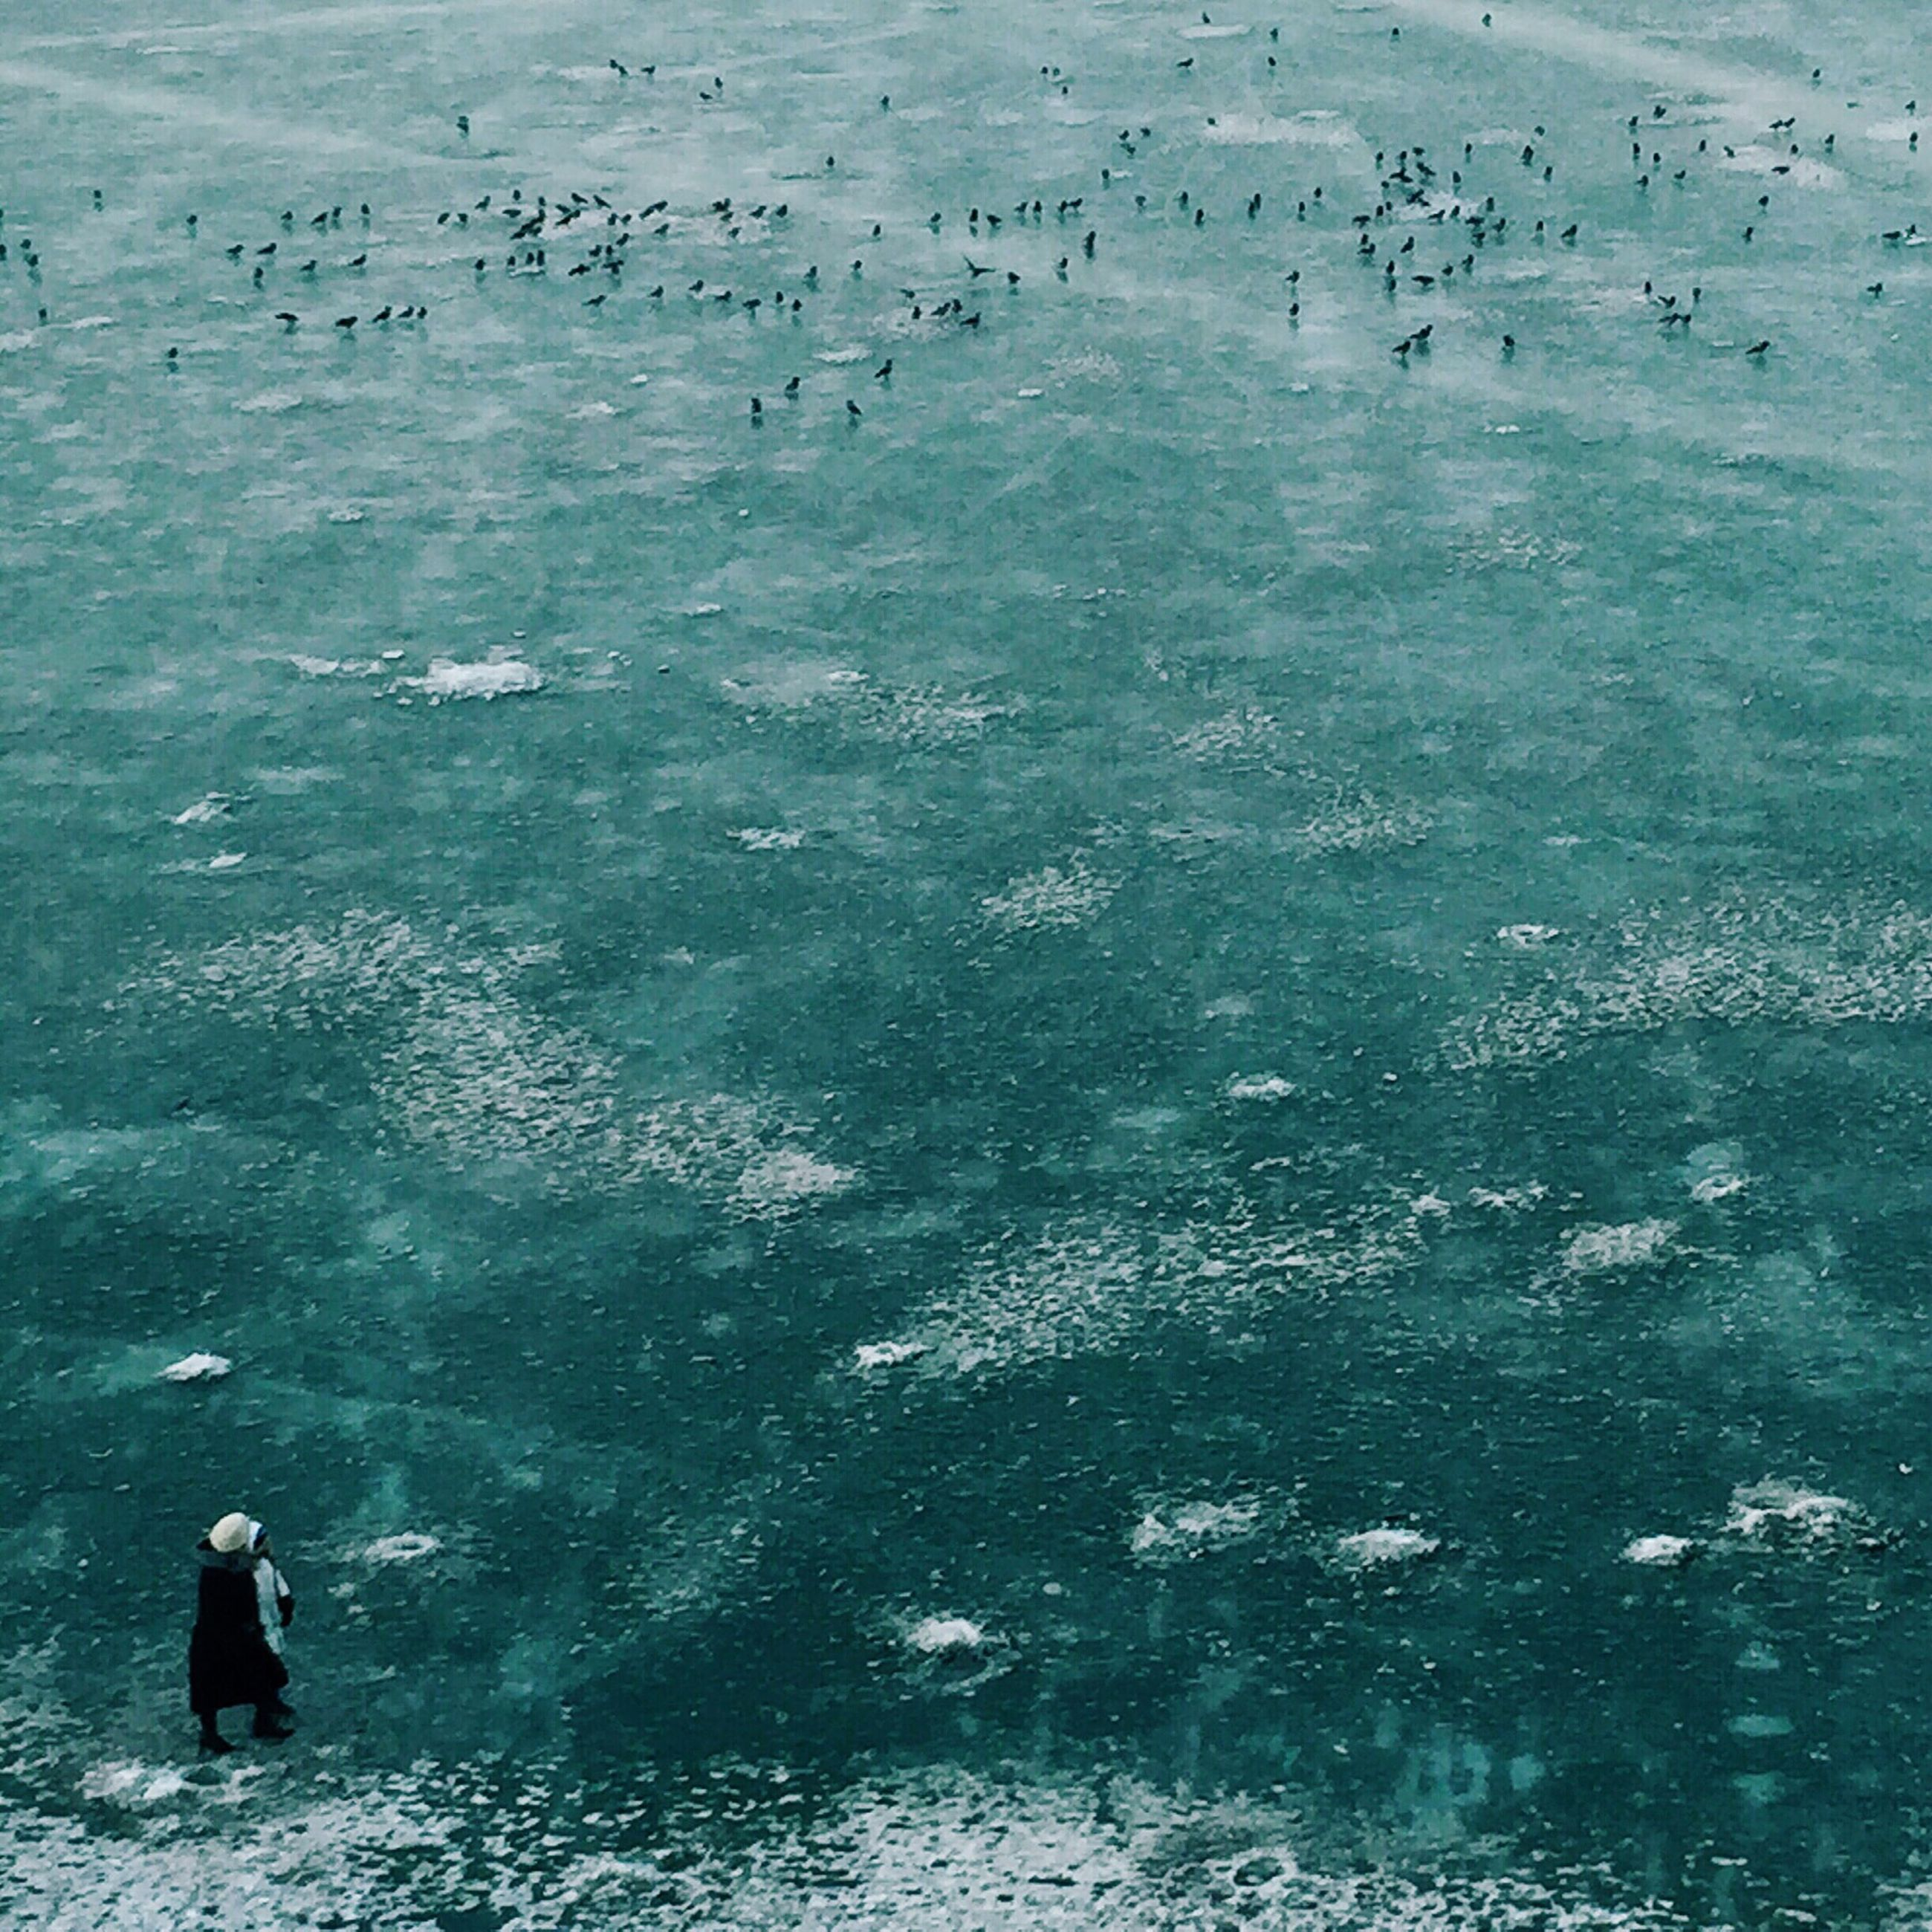 water, bird, sea, animal themes, animals in the wild, wildlife, beach, high angle view, flock of birds, nature, swimming, tranquility, beauty in nature, shore, day, tranquil scene, outdoors, scenics, vacations